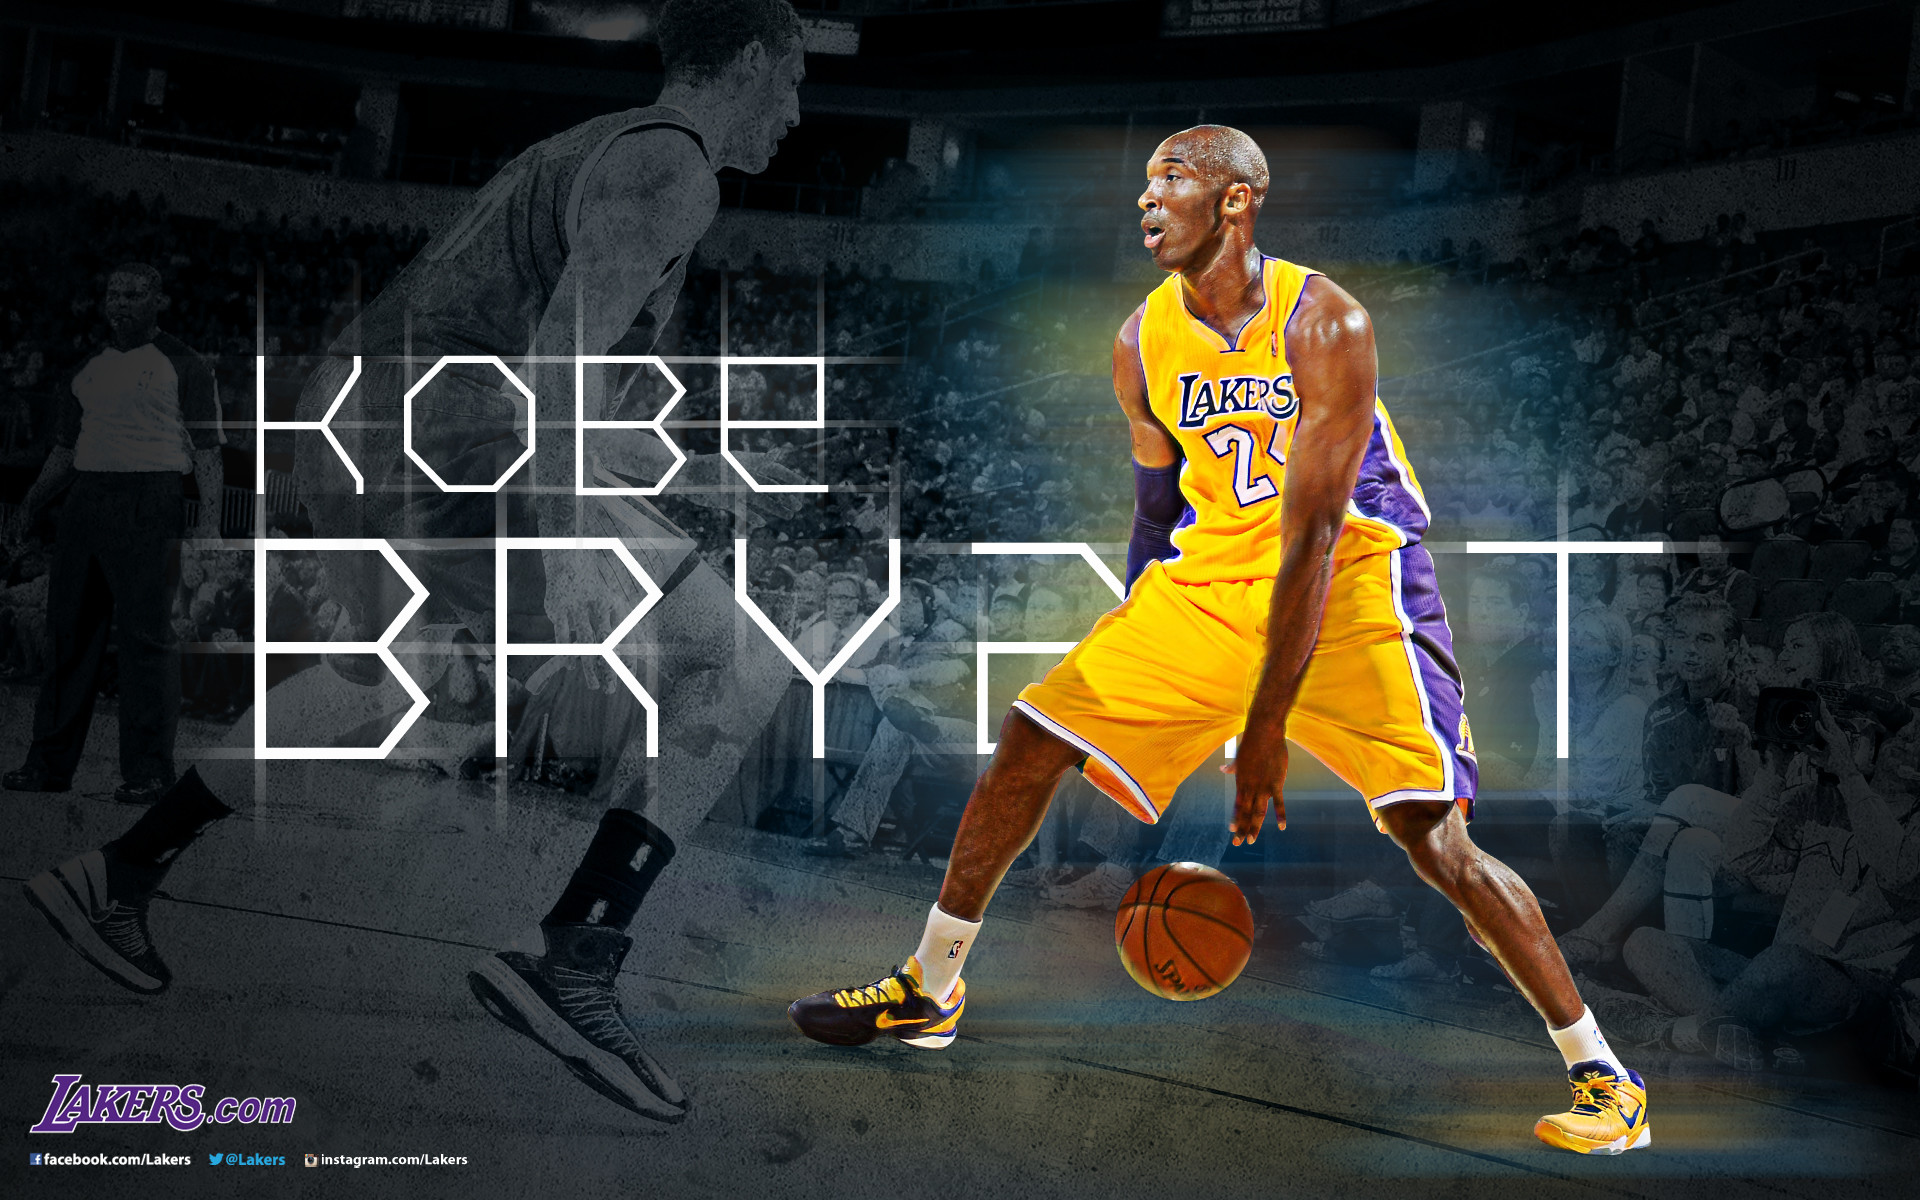 Lakers Desktop Wallpapers   THE OFFICIAL SITE OF THE LOS ANGELES .